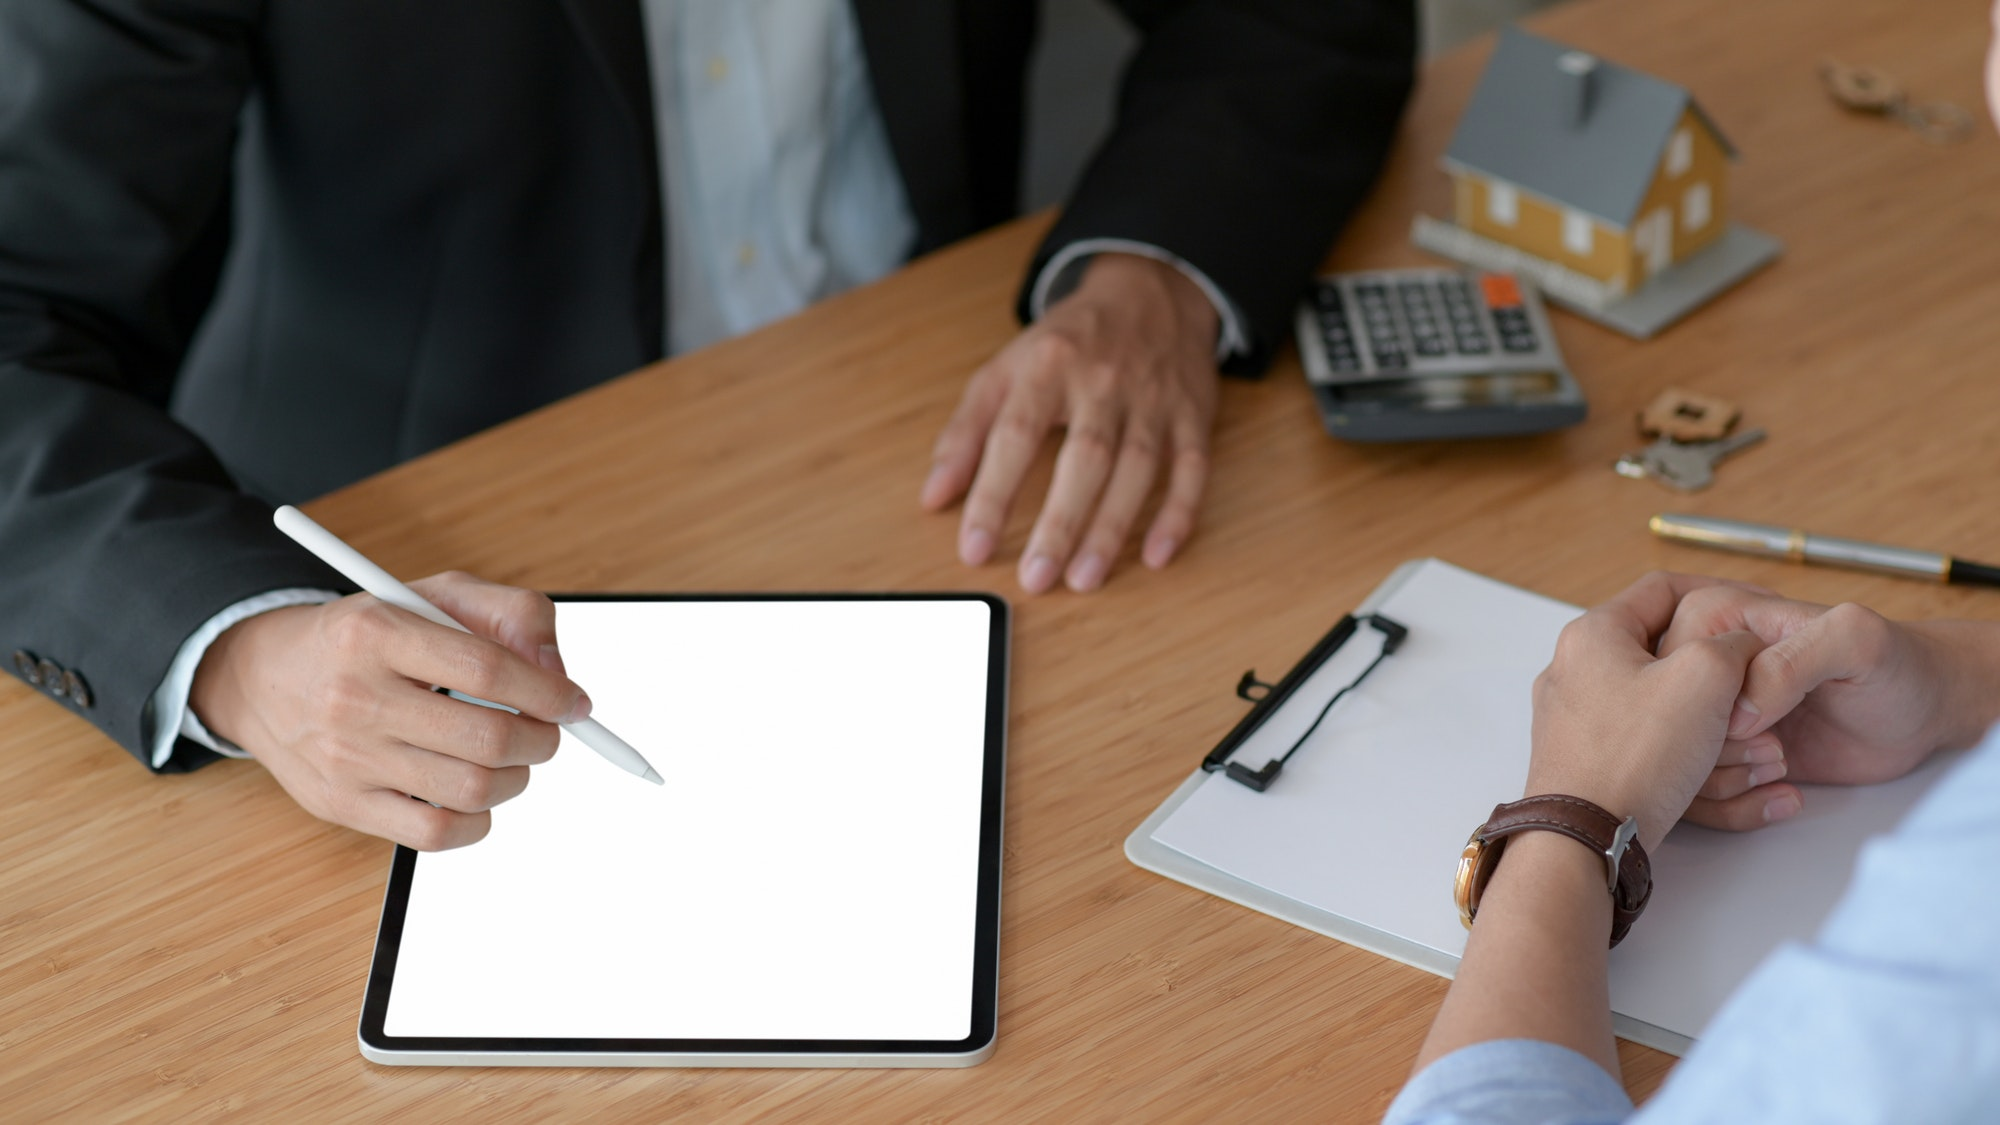 Real estate insurance agents are using tablet to recommend insurance packages to customer.